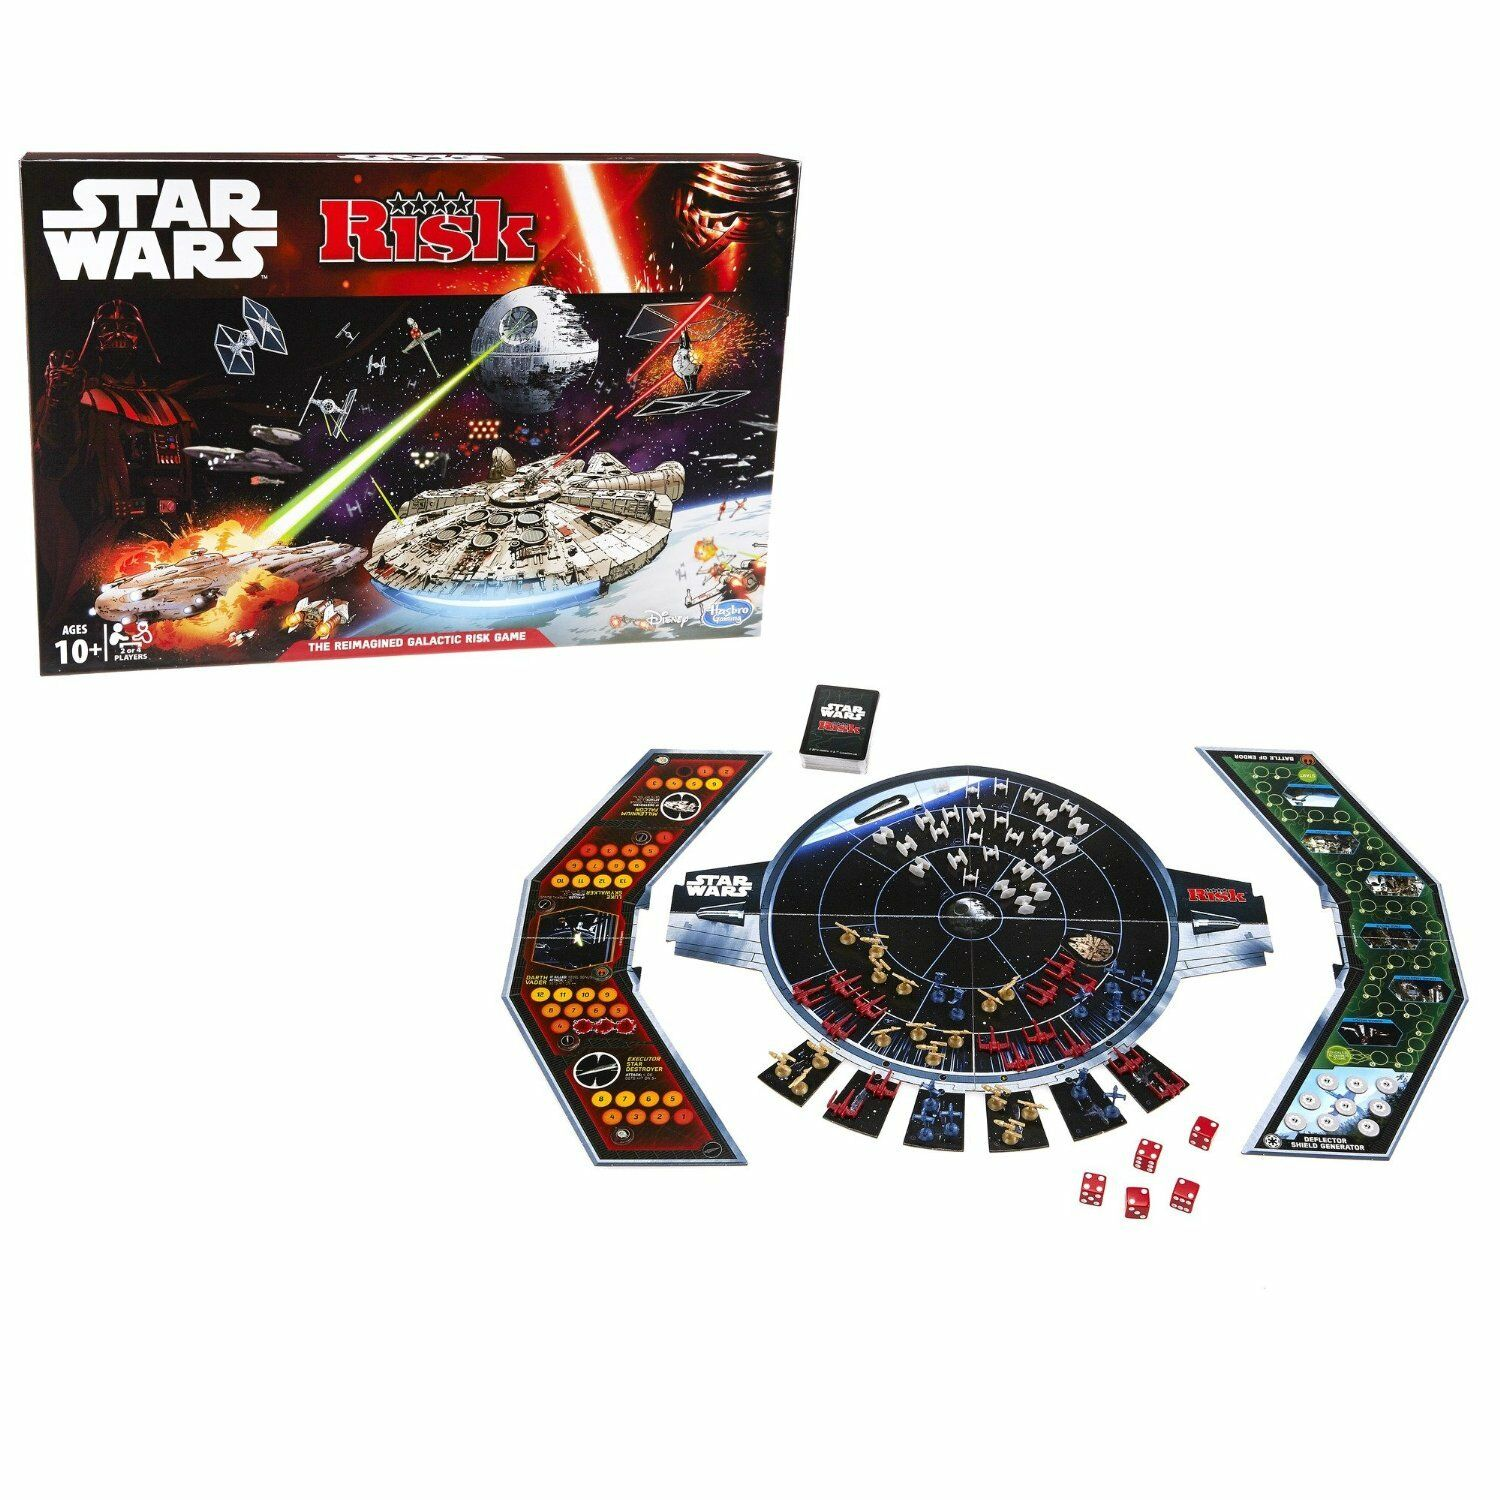 Star Wars RISIKO - The Reimagined GALATTICO Risiko Gioco da tavolo HASBRO